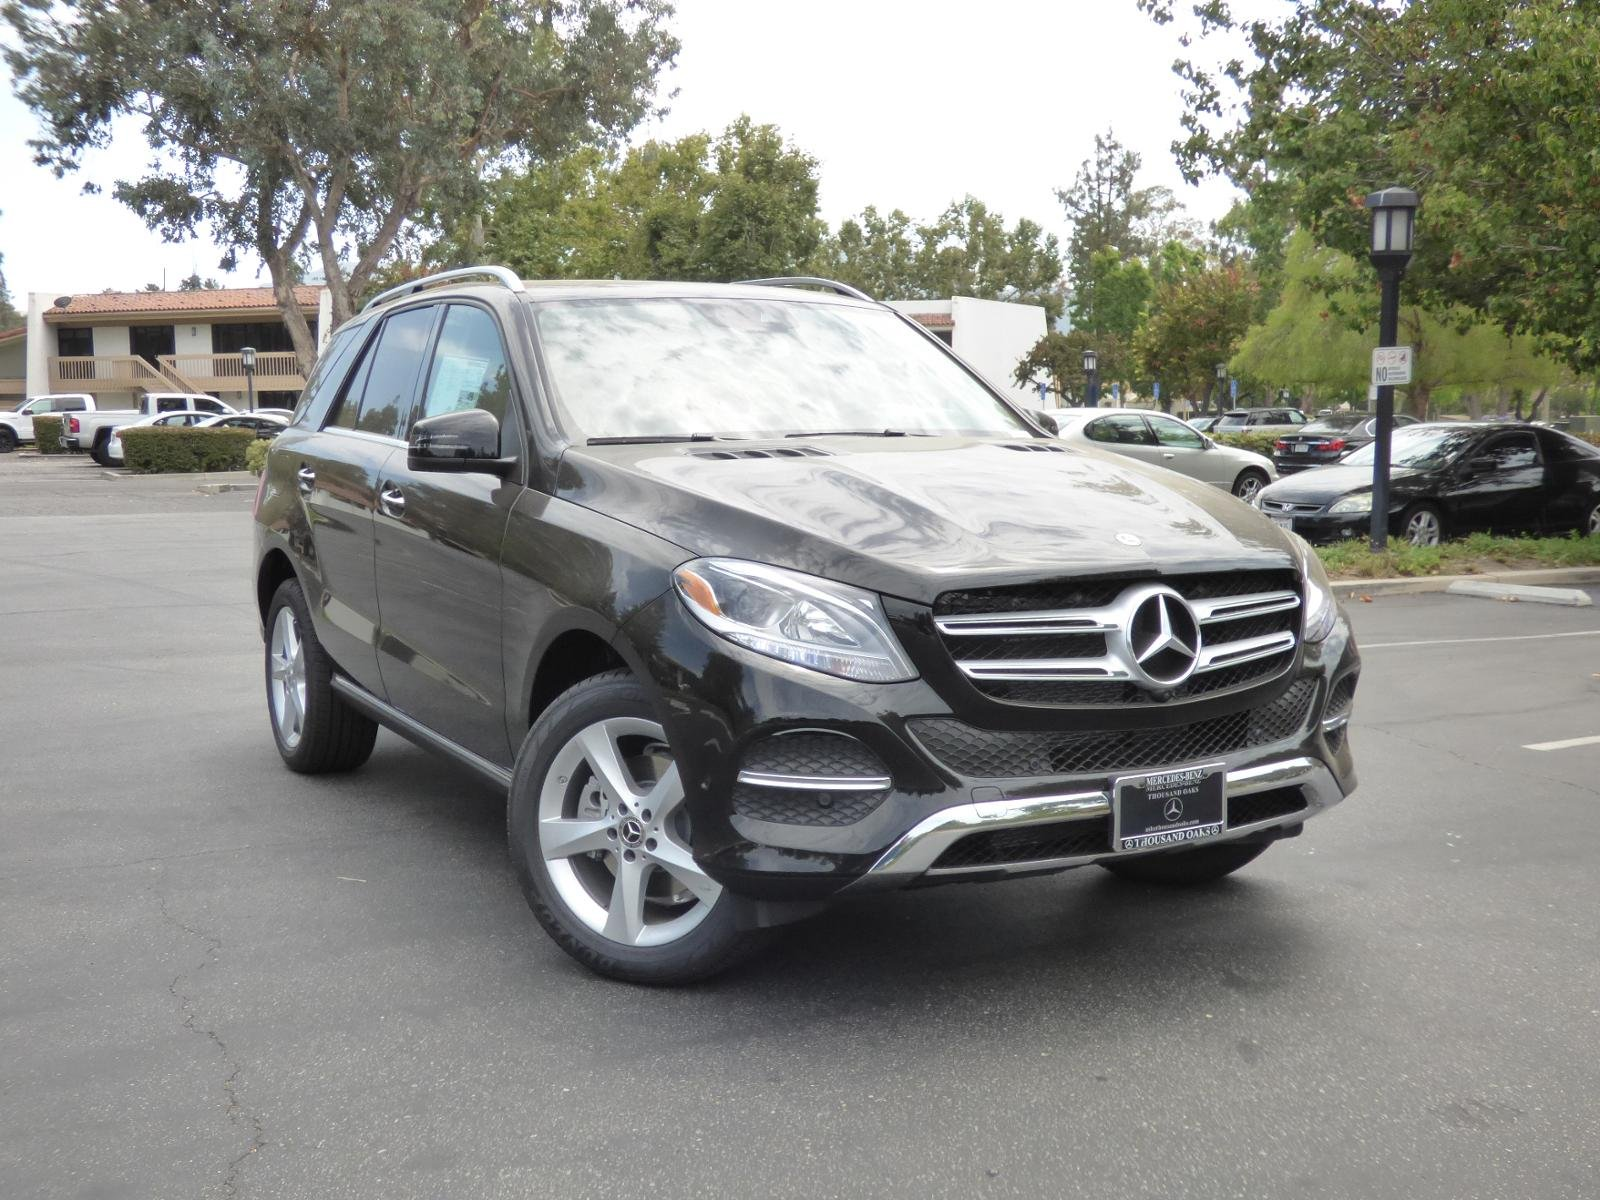 New 2018 Mercedes Benz GLE GLE 350 SUV in Thousand Oaks